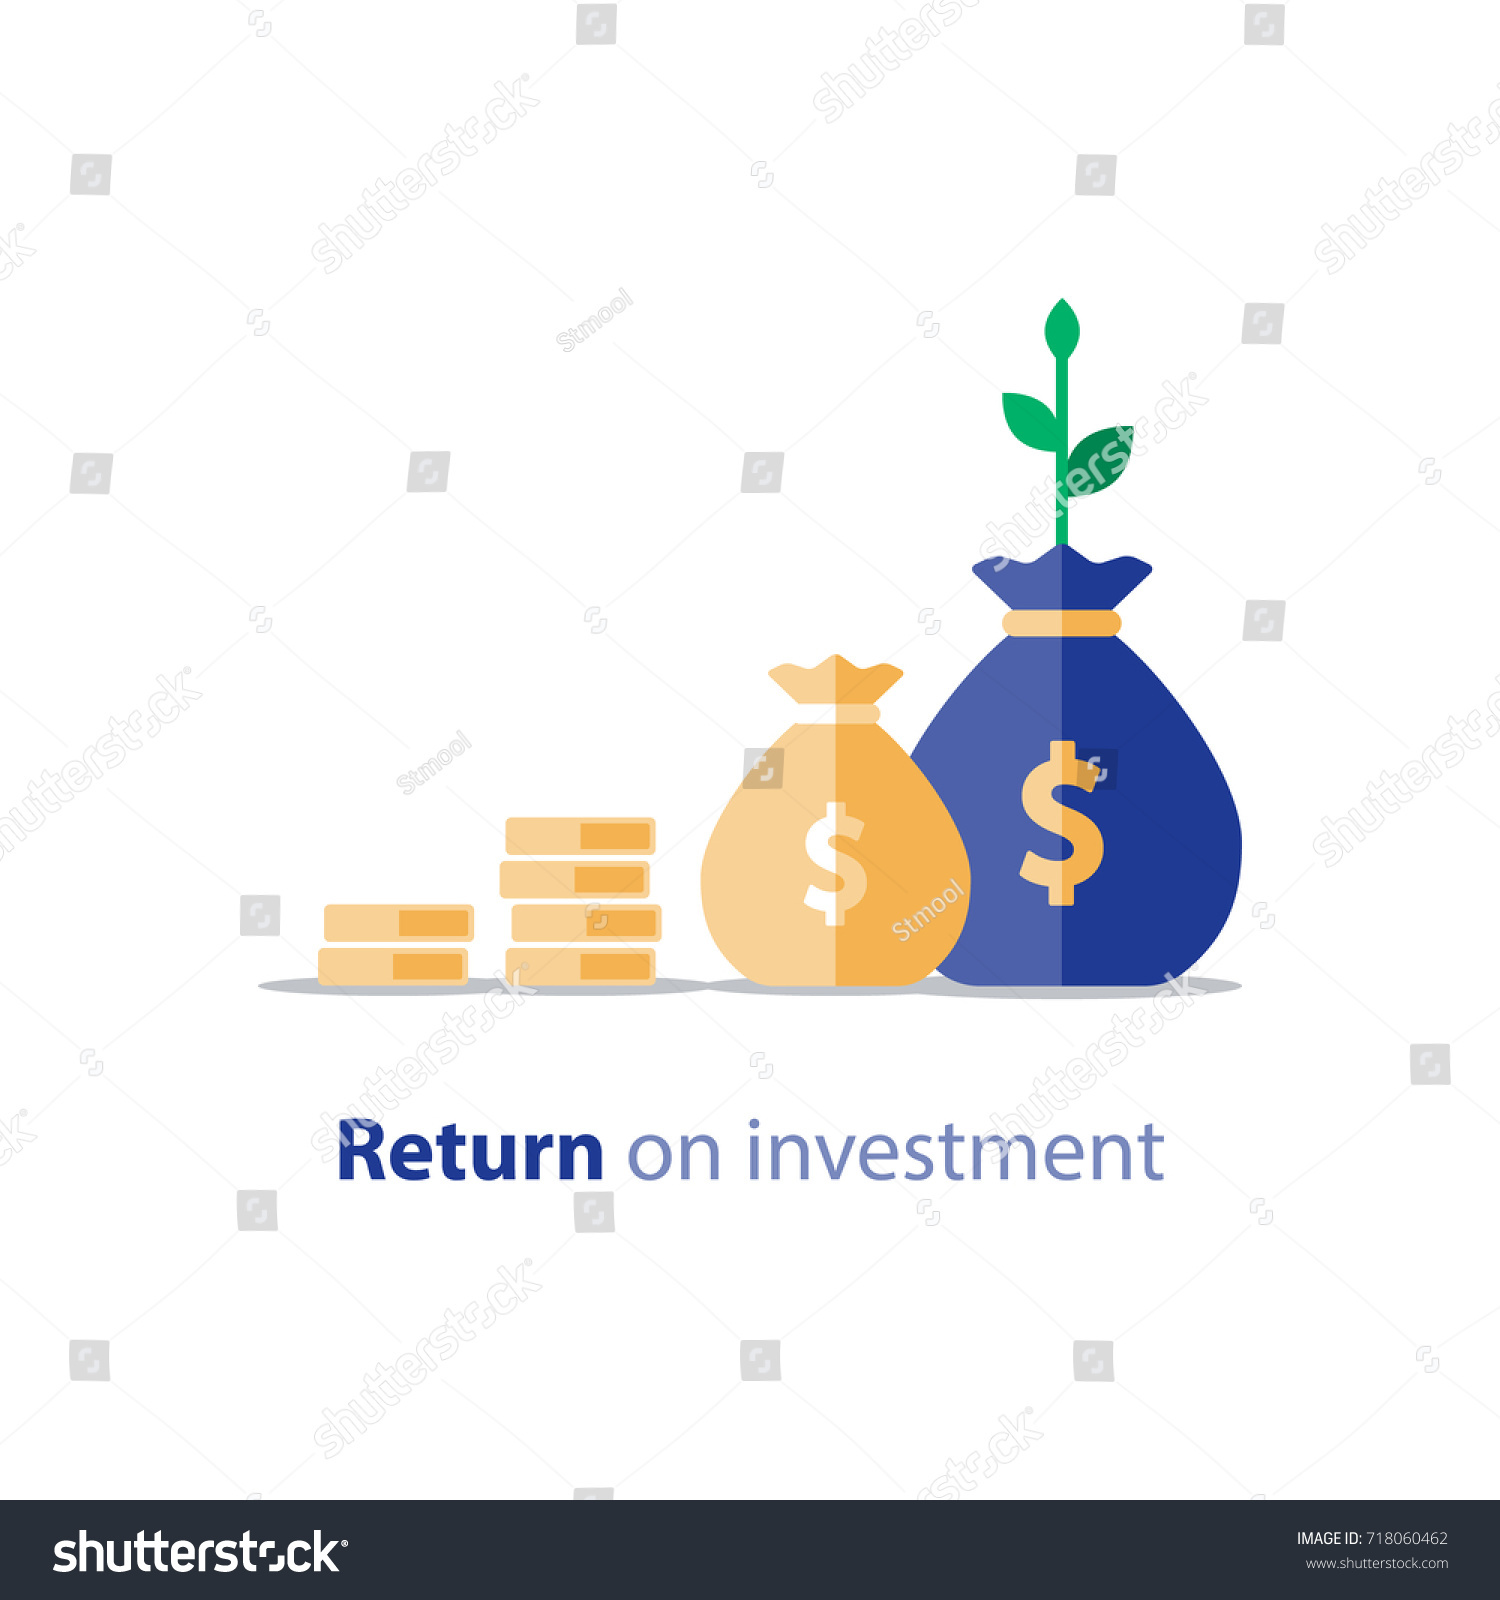 does financial development stimulate investment financing Development finance institutions and financial inclusion:  role in promoting market development beyond an investment-only  development and financial returns.